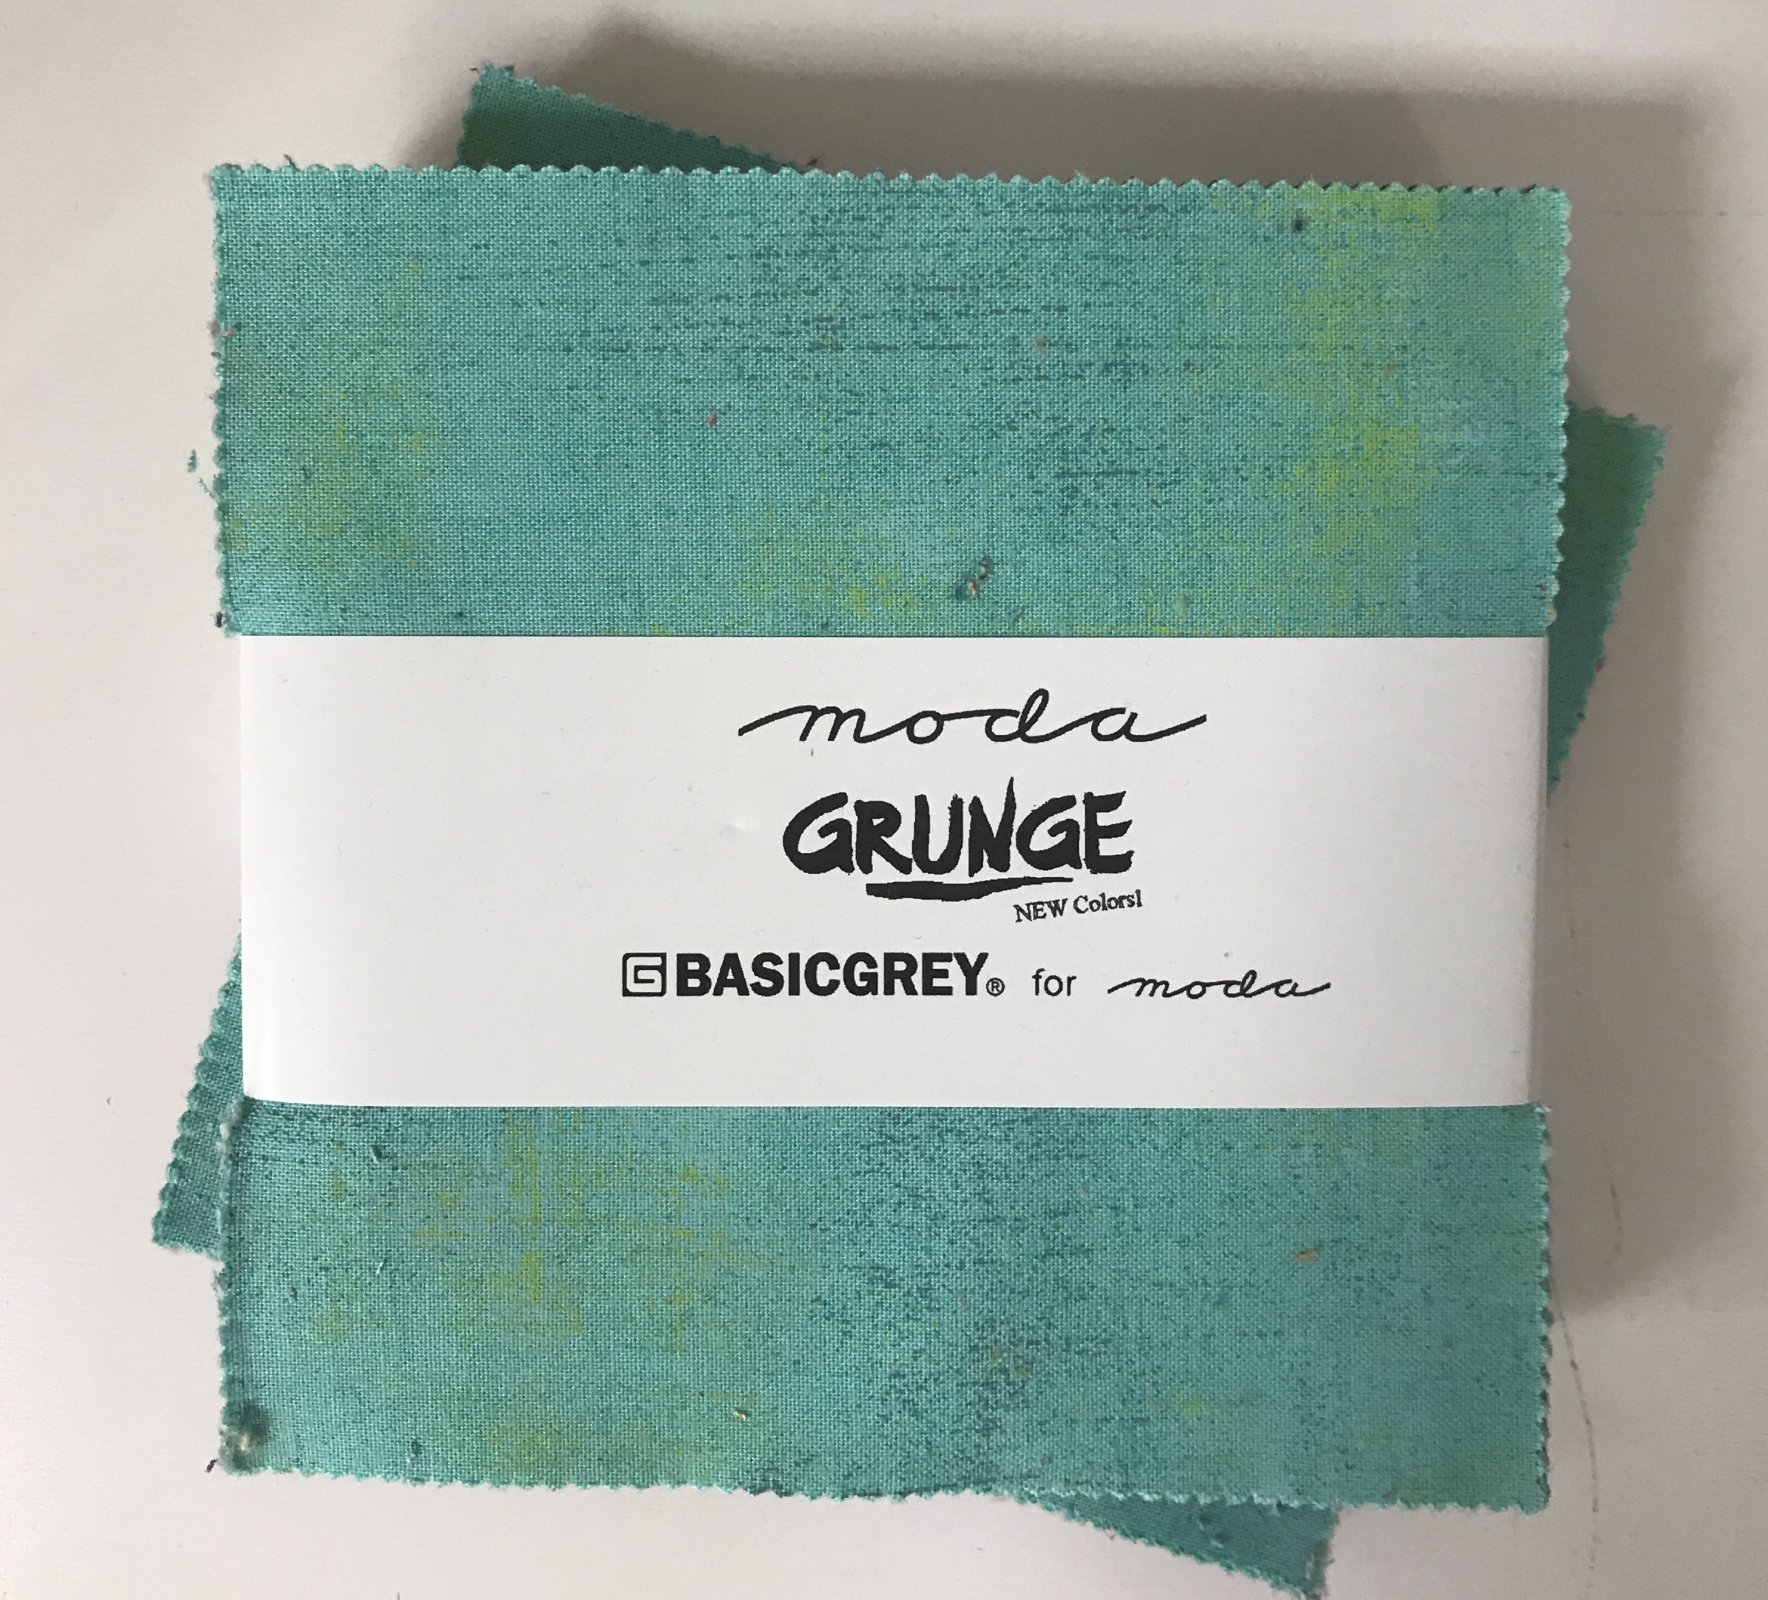 Grunge Basics 2016 new colors